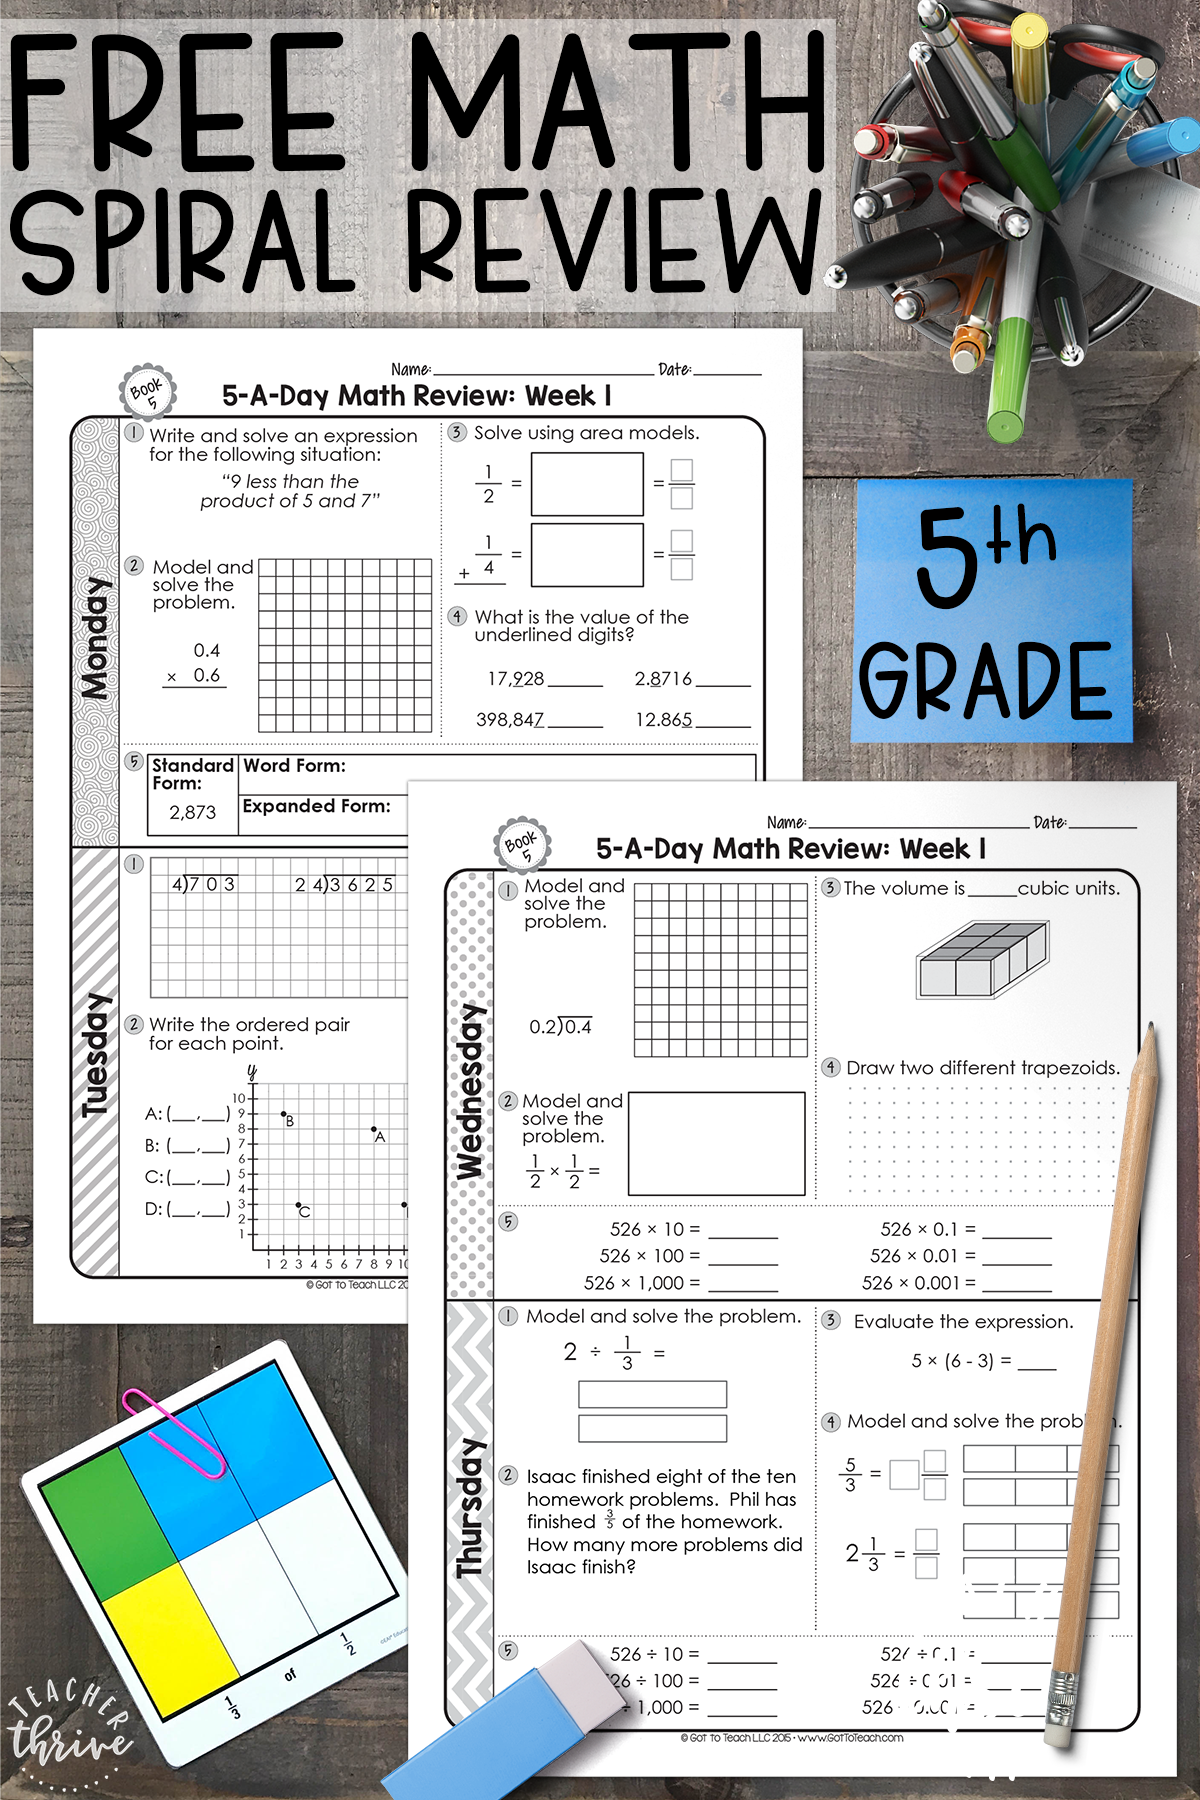 Daily Math Spiral Worksheet   Printable Worksheets and Activities for  Teachers [ 1800 x 1200 Pixel ]